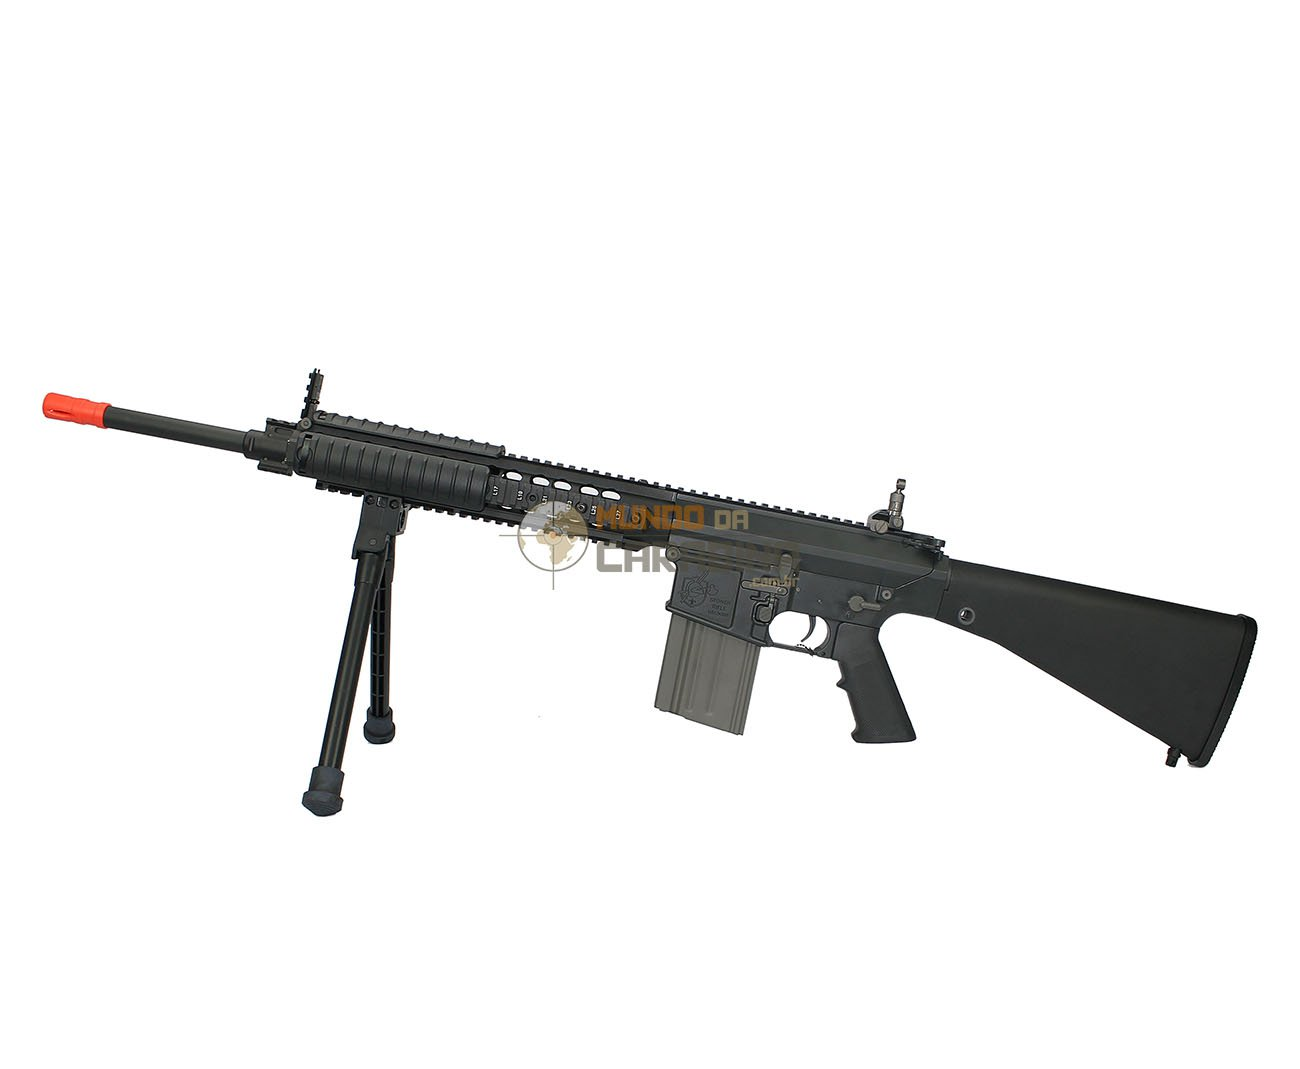 Rifle De Airsoft M110 Semi-auto Sniper System (sass) Full Metal - Ares